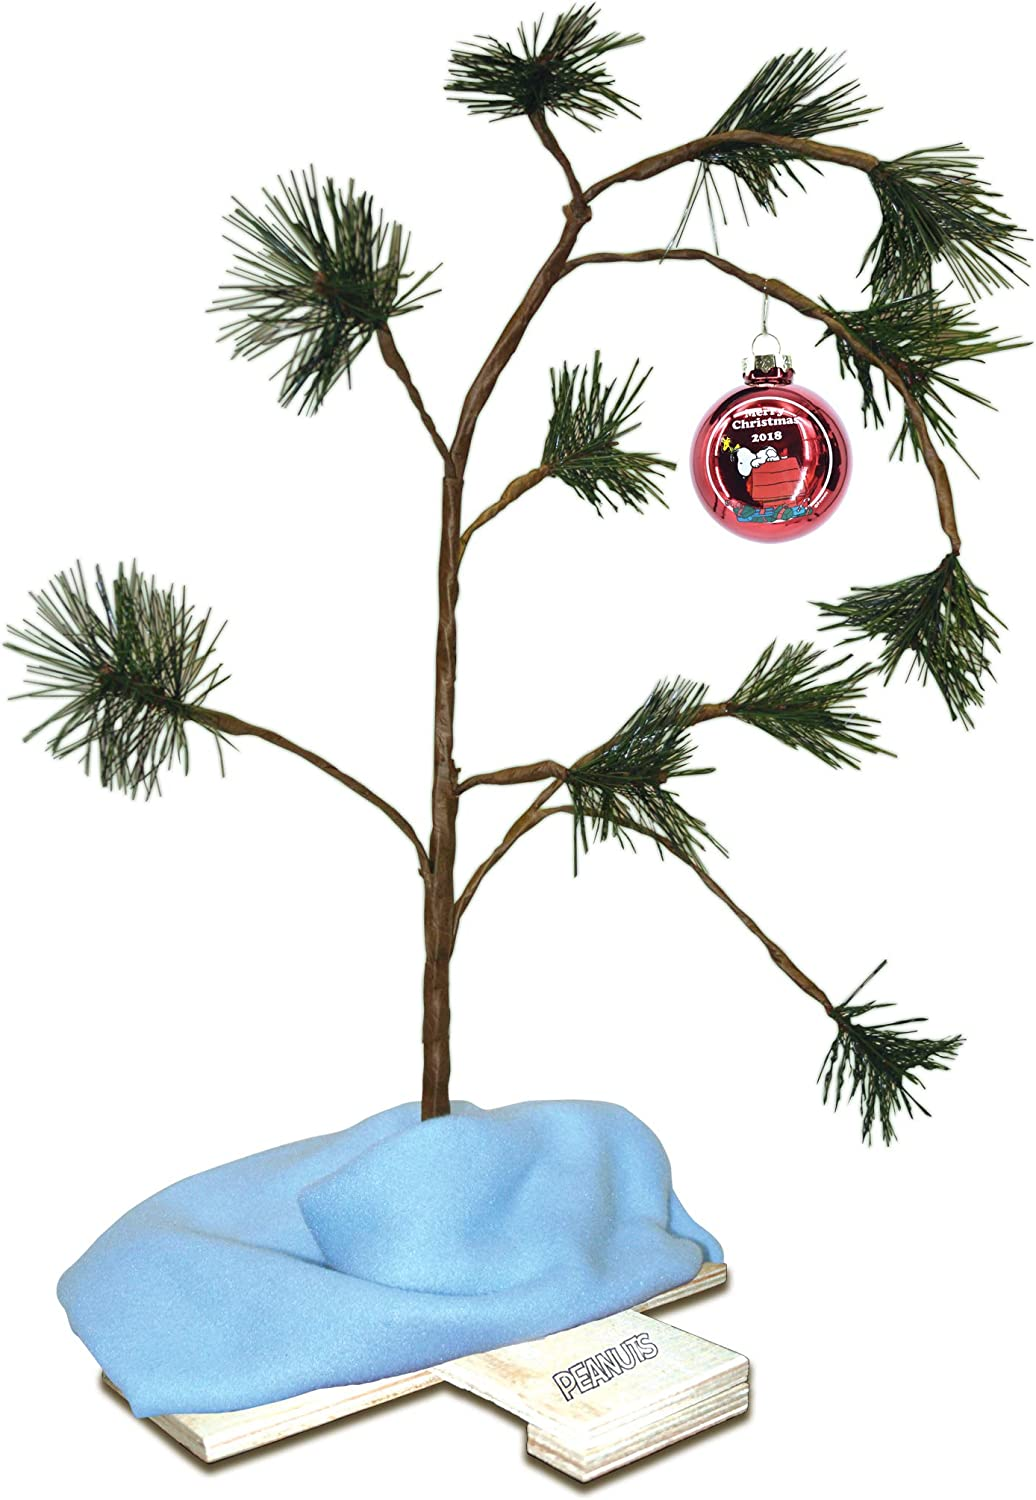 Peanuts 18 inch Charlie Brown Christmas Lonely Tree With Linus Blanket And Clas